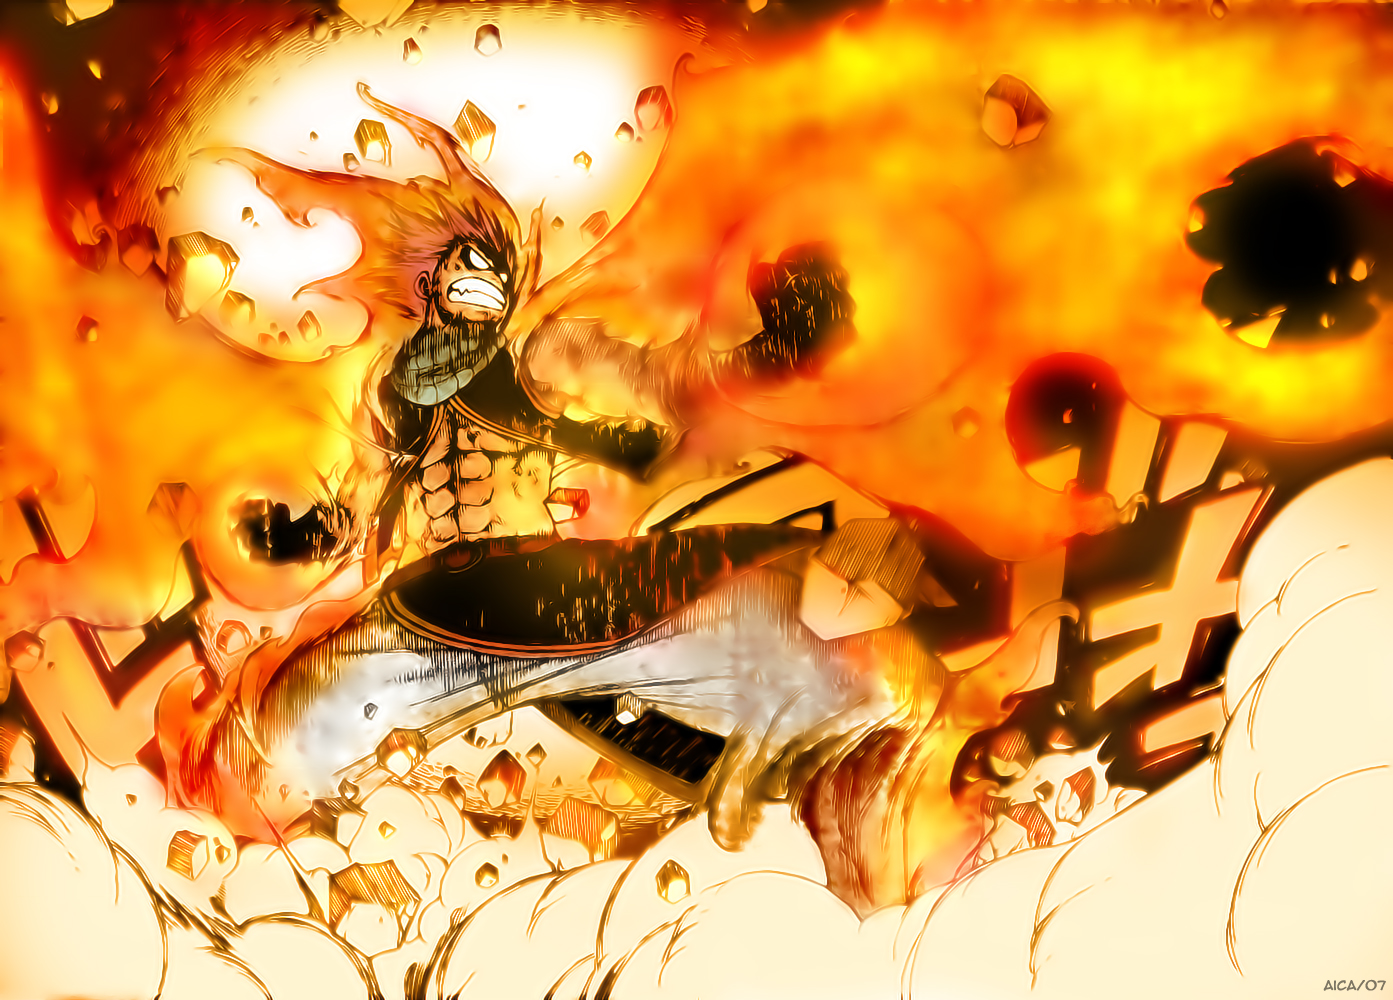 20 Fairy Tail Wallpapers Anime Allhdwallpapers